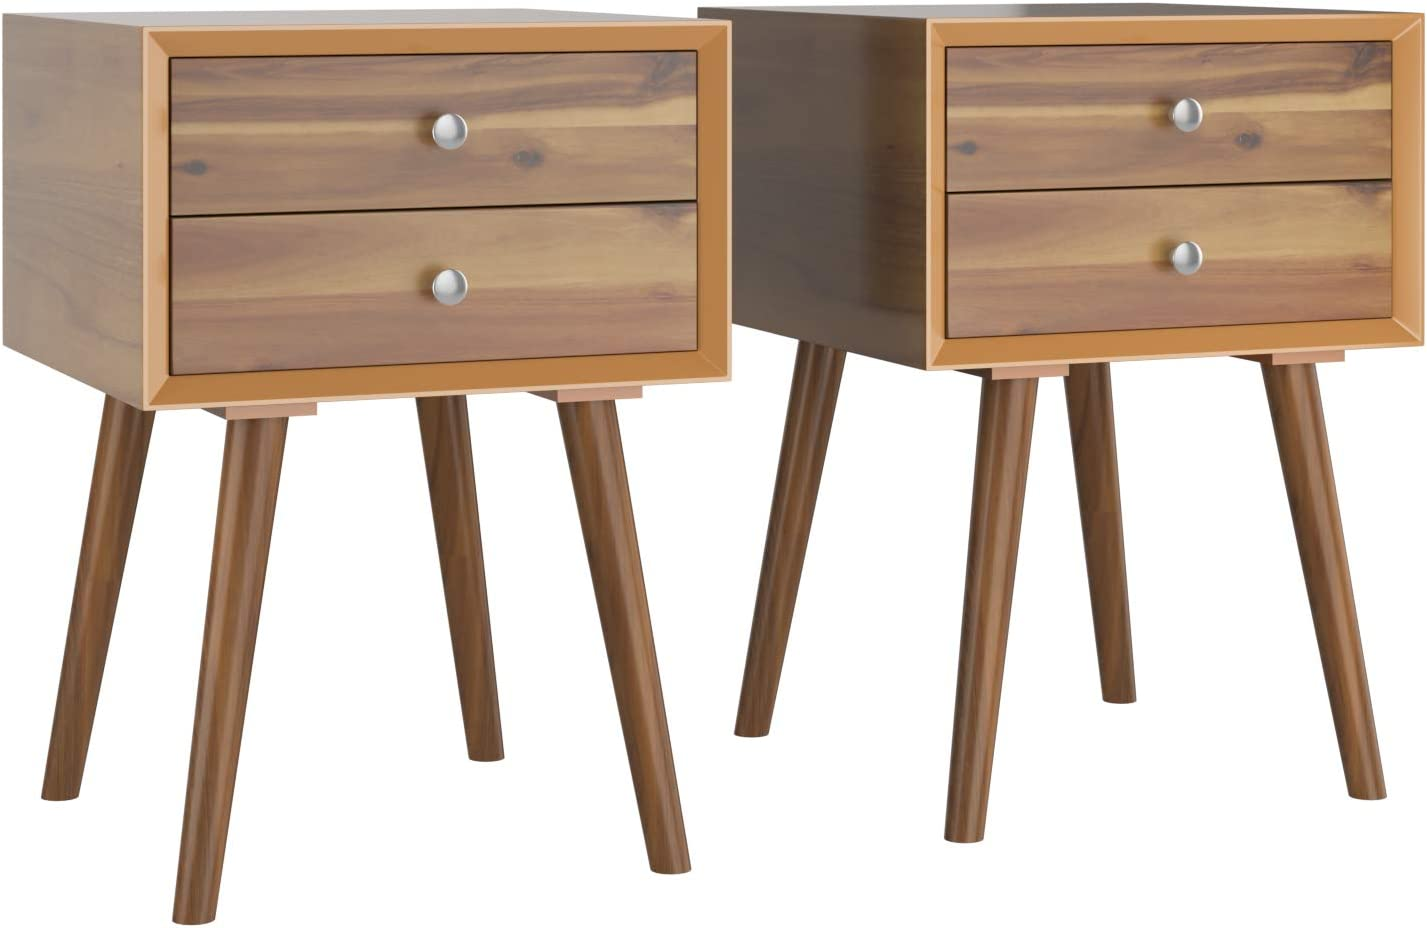 Giantex End Table W/Drawers and Storage Wooden Mid-Century Accent Side Table Multipurpose for Bedroom, Living Room Home Furniture Nightstand (2, Walnut)